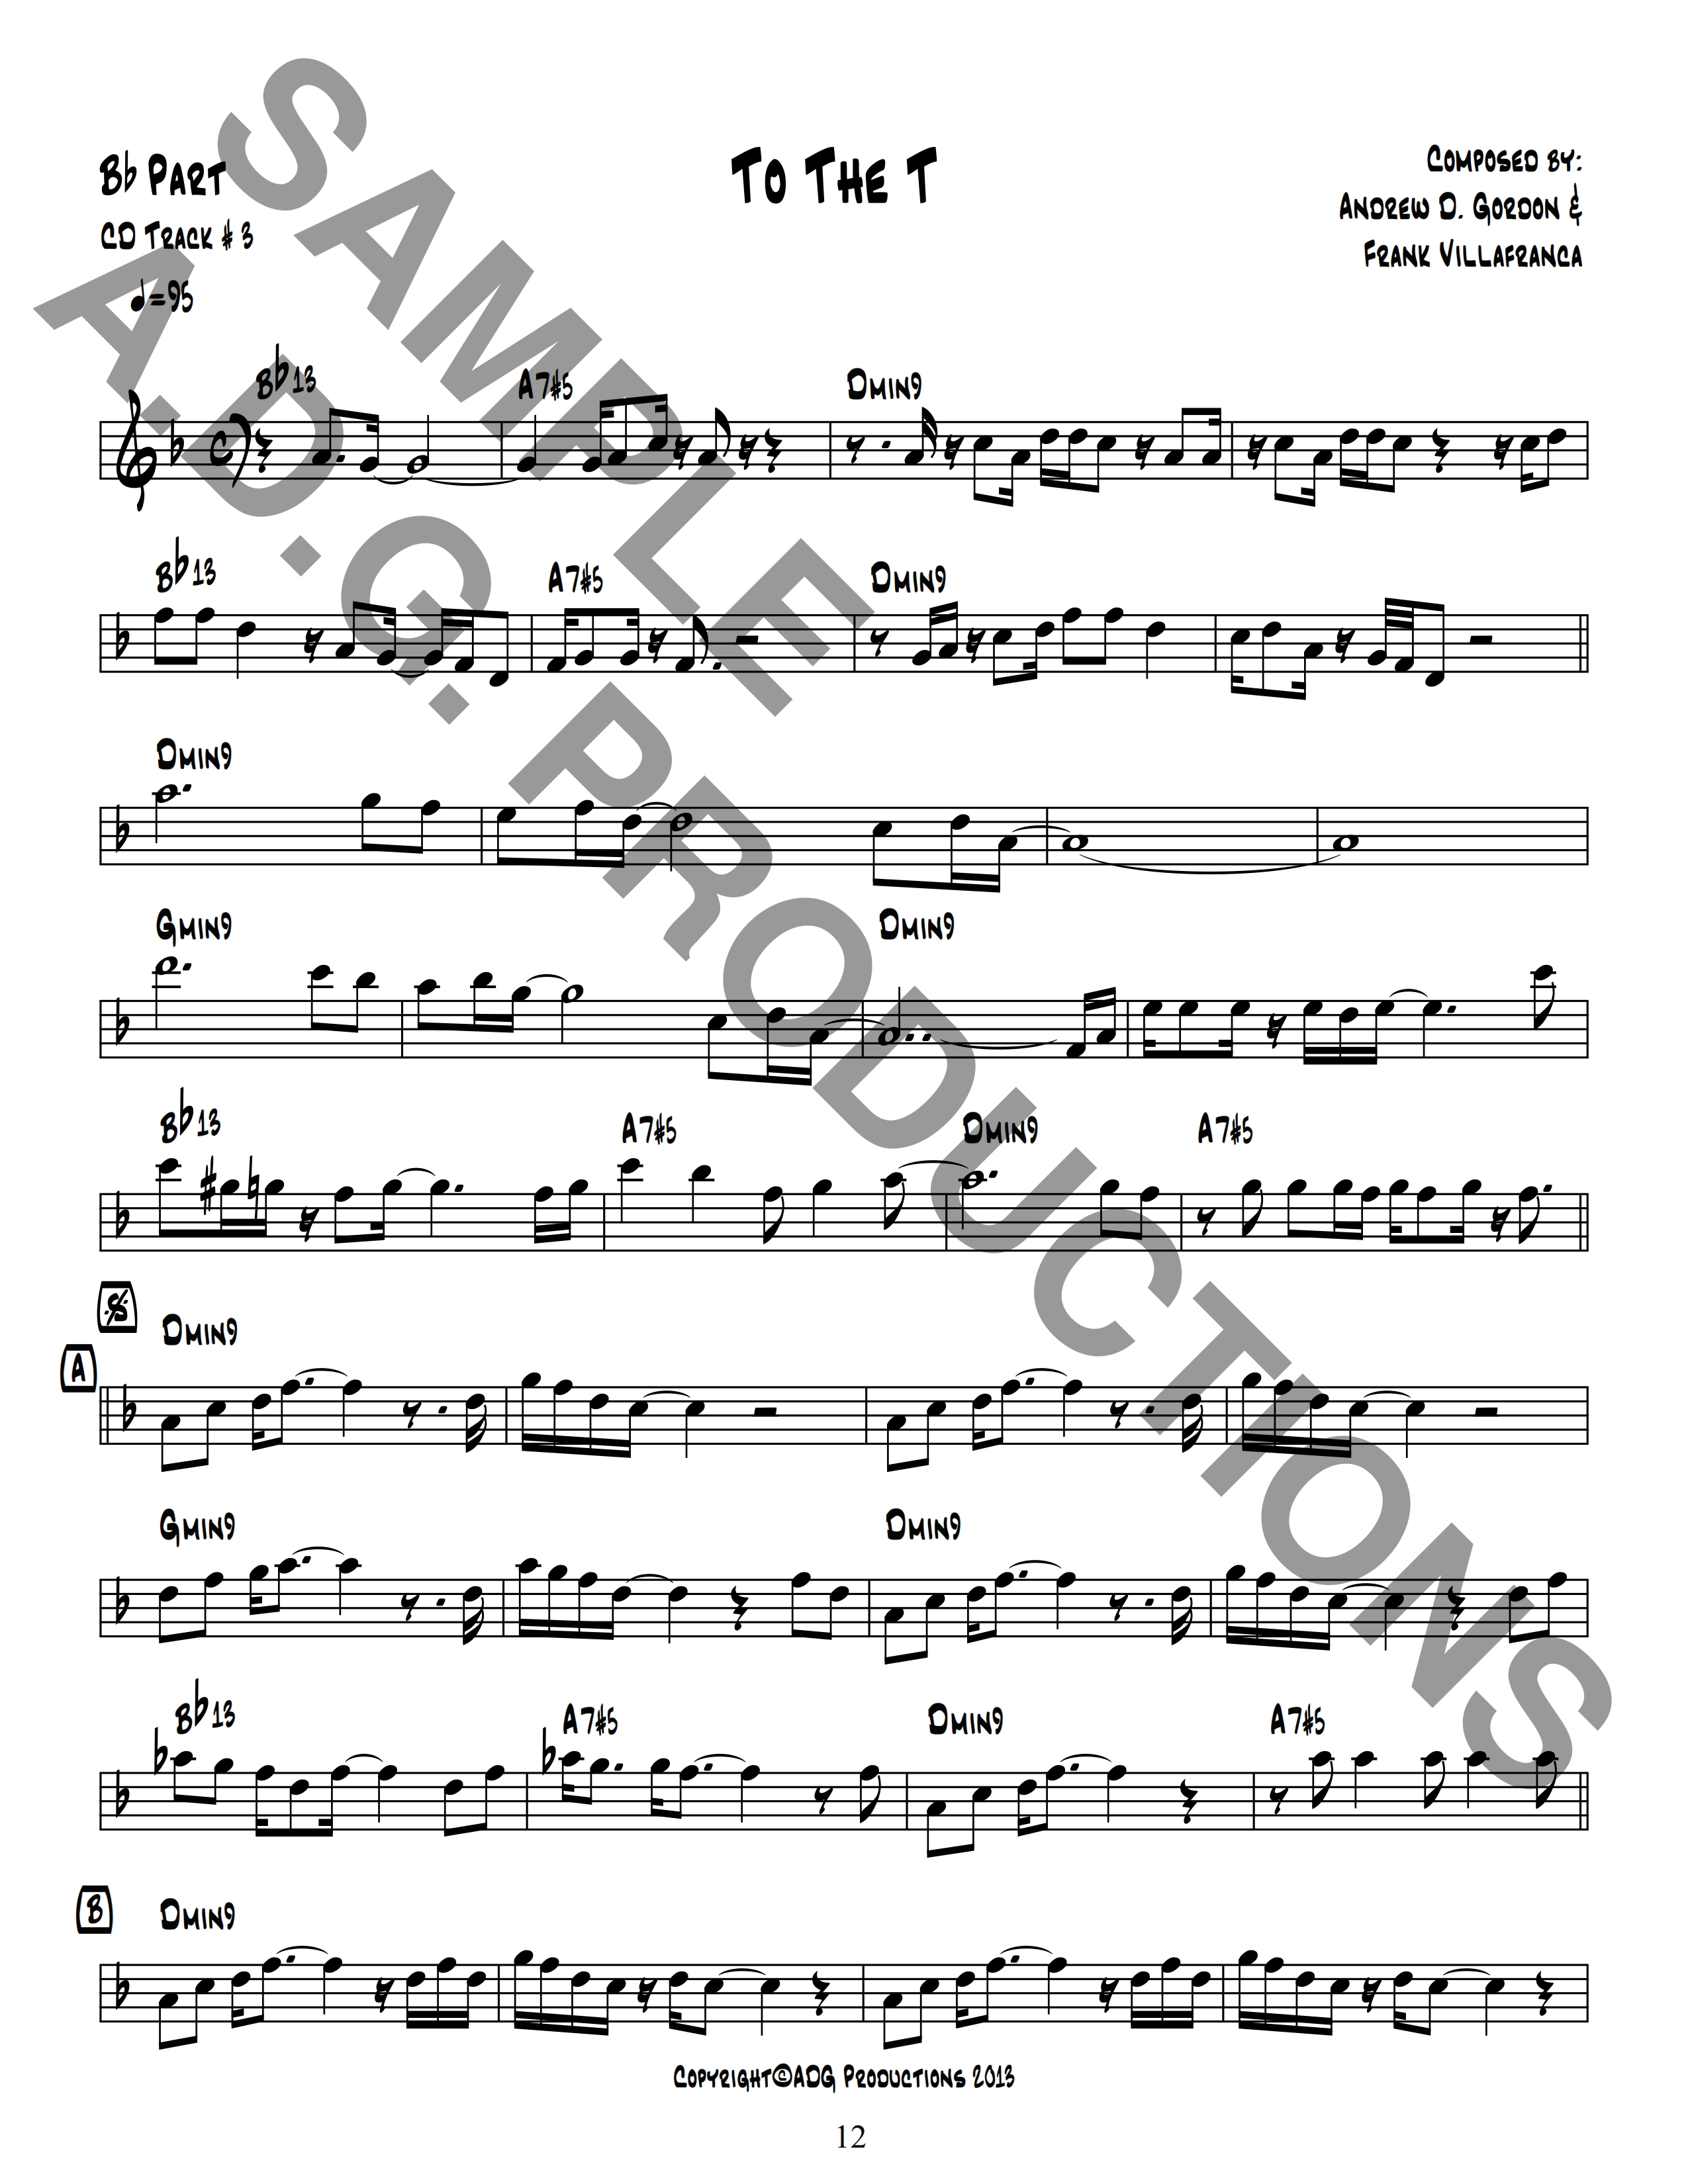 Ultra Smooth Jazz Play-A-Long Songbook for Bb & Eb instruments PDF/MP3 files